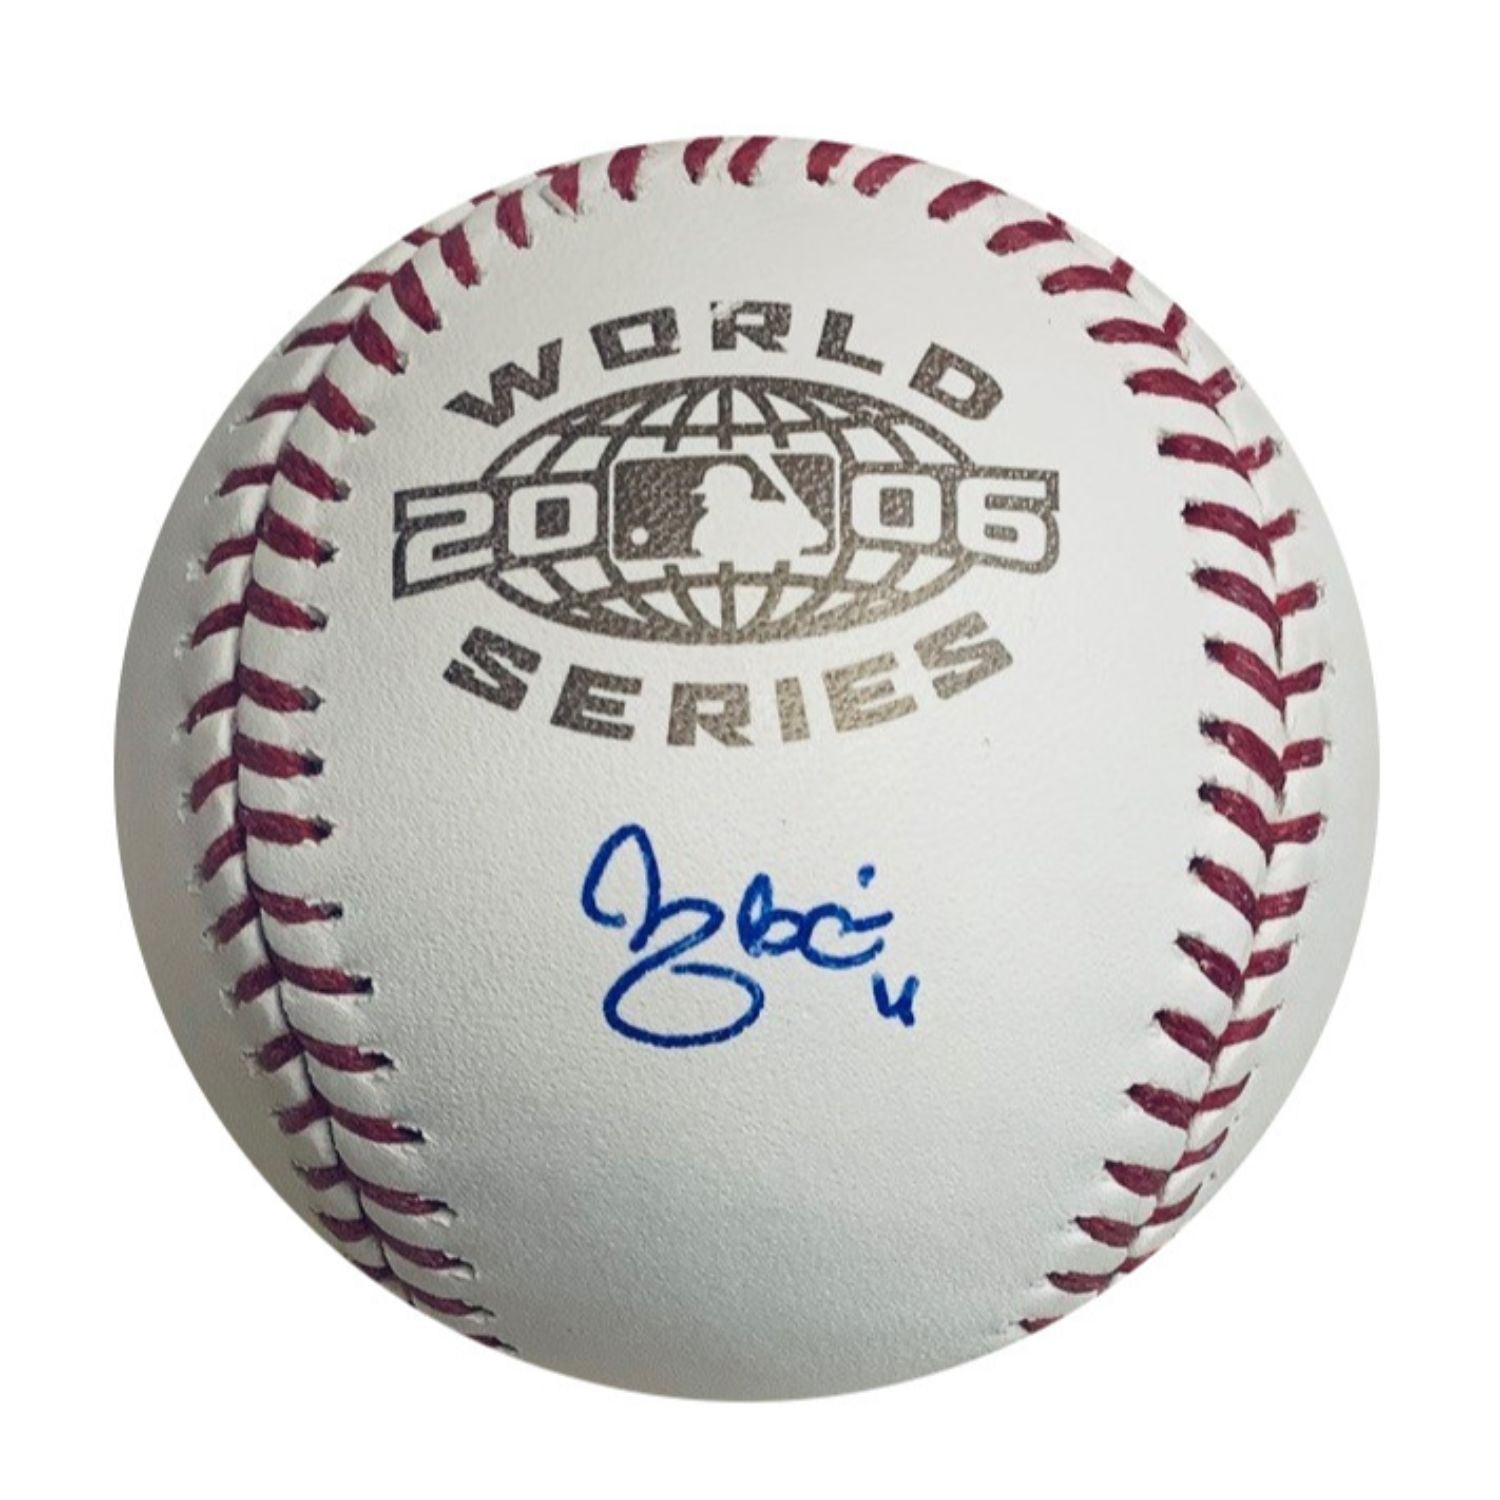 Yadier Molina St Louis Cardinals Autographed 2006 World Series Signed Baseball JSA COA With UV Display Case-Powers Sports Memorabilia